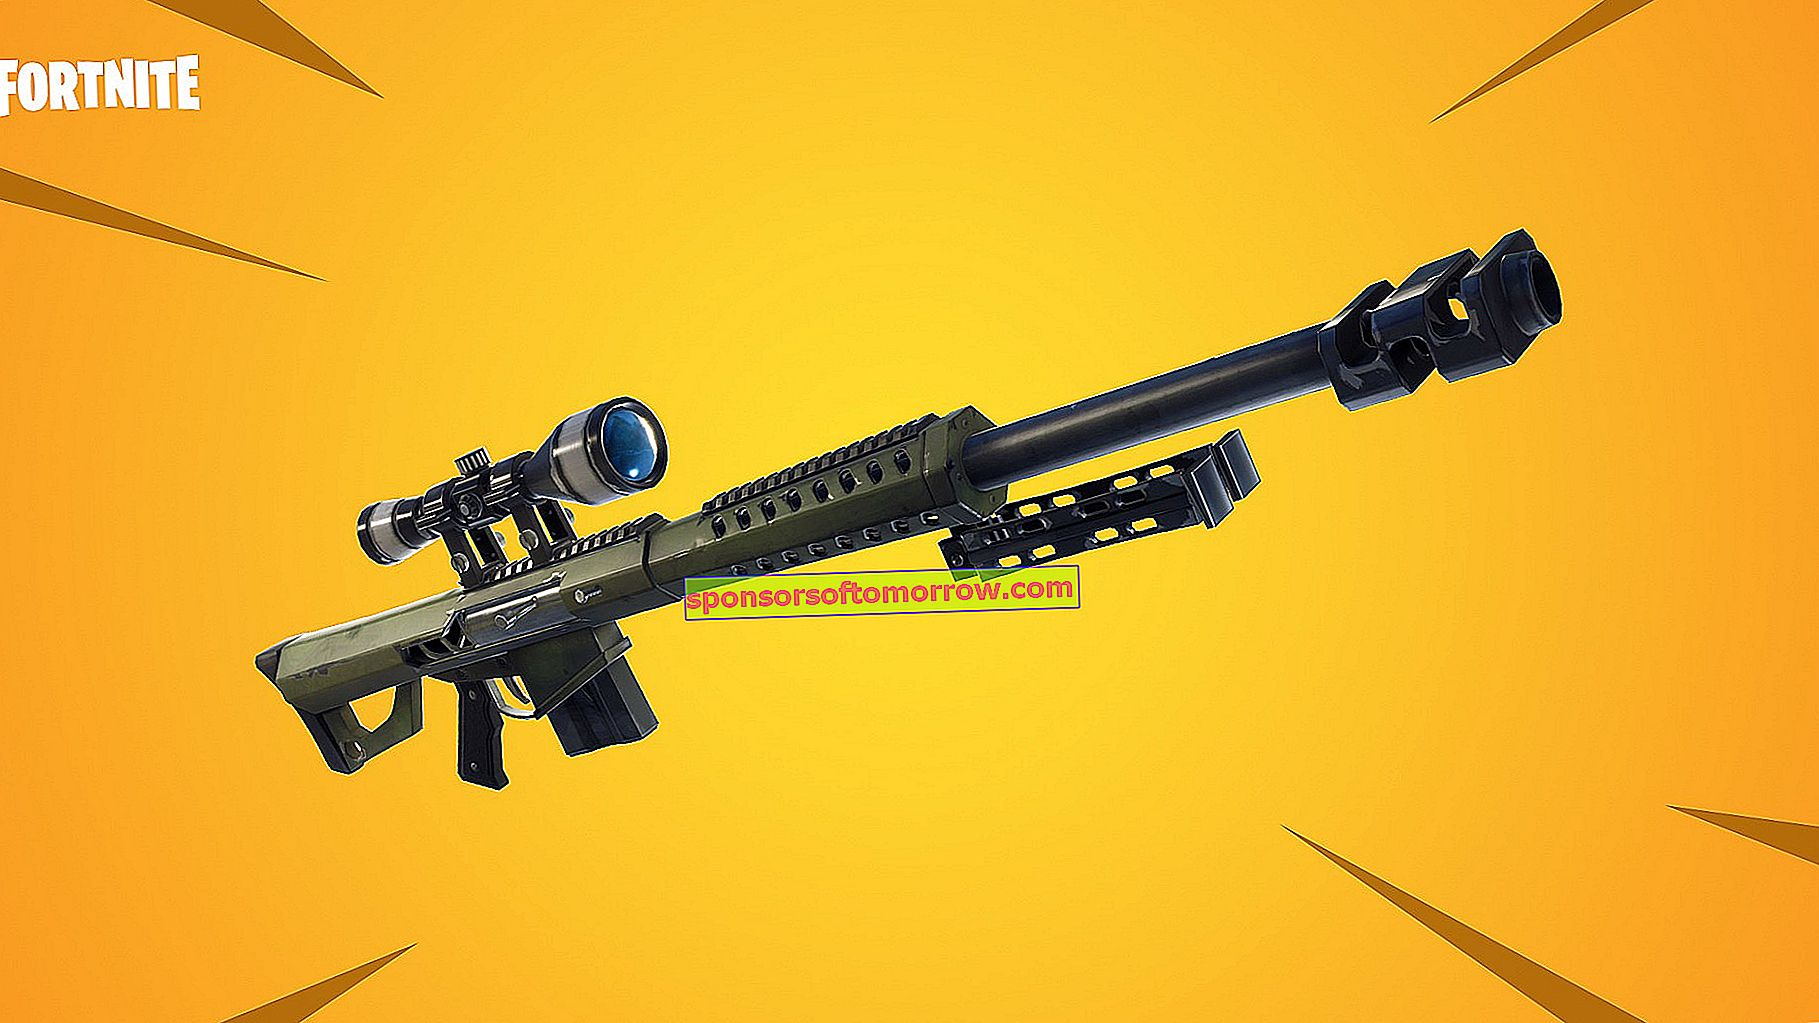 rifle_fortnite_5.21